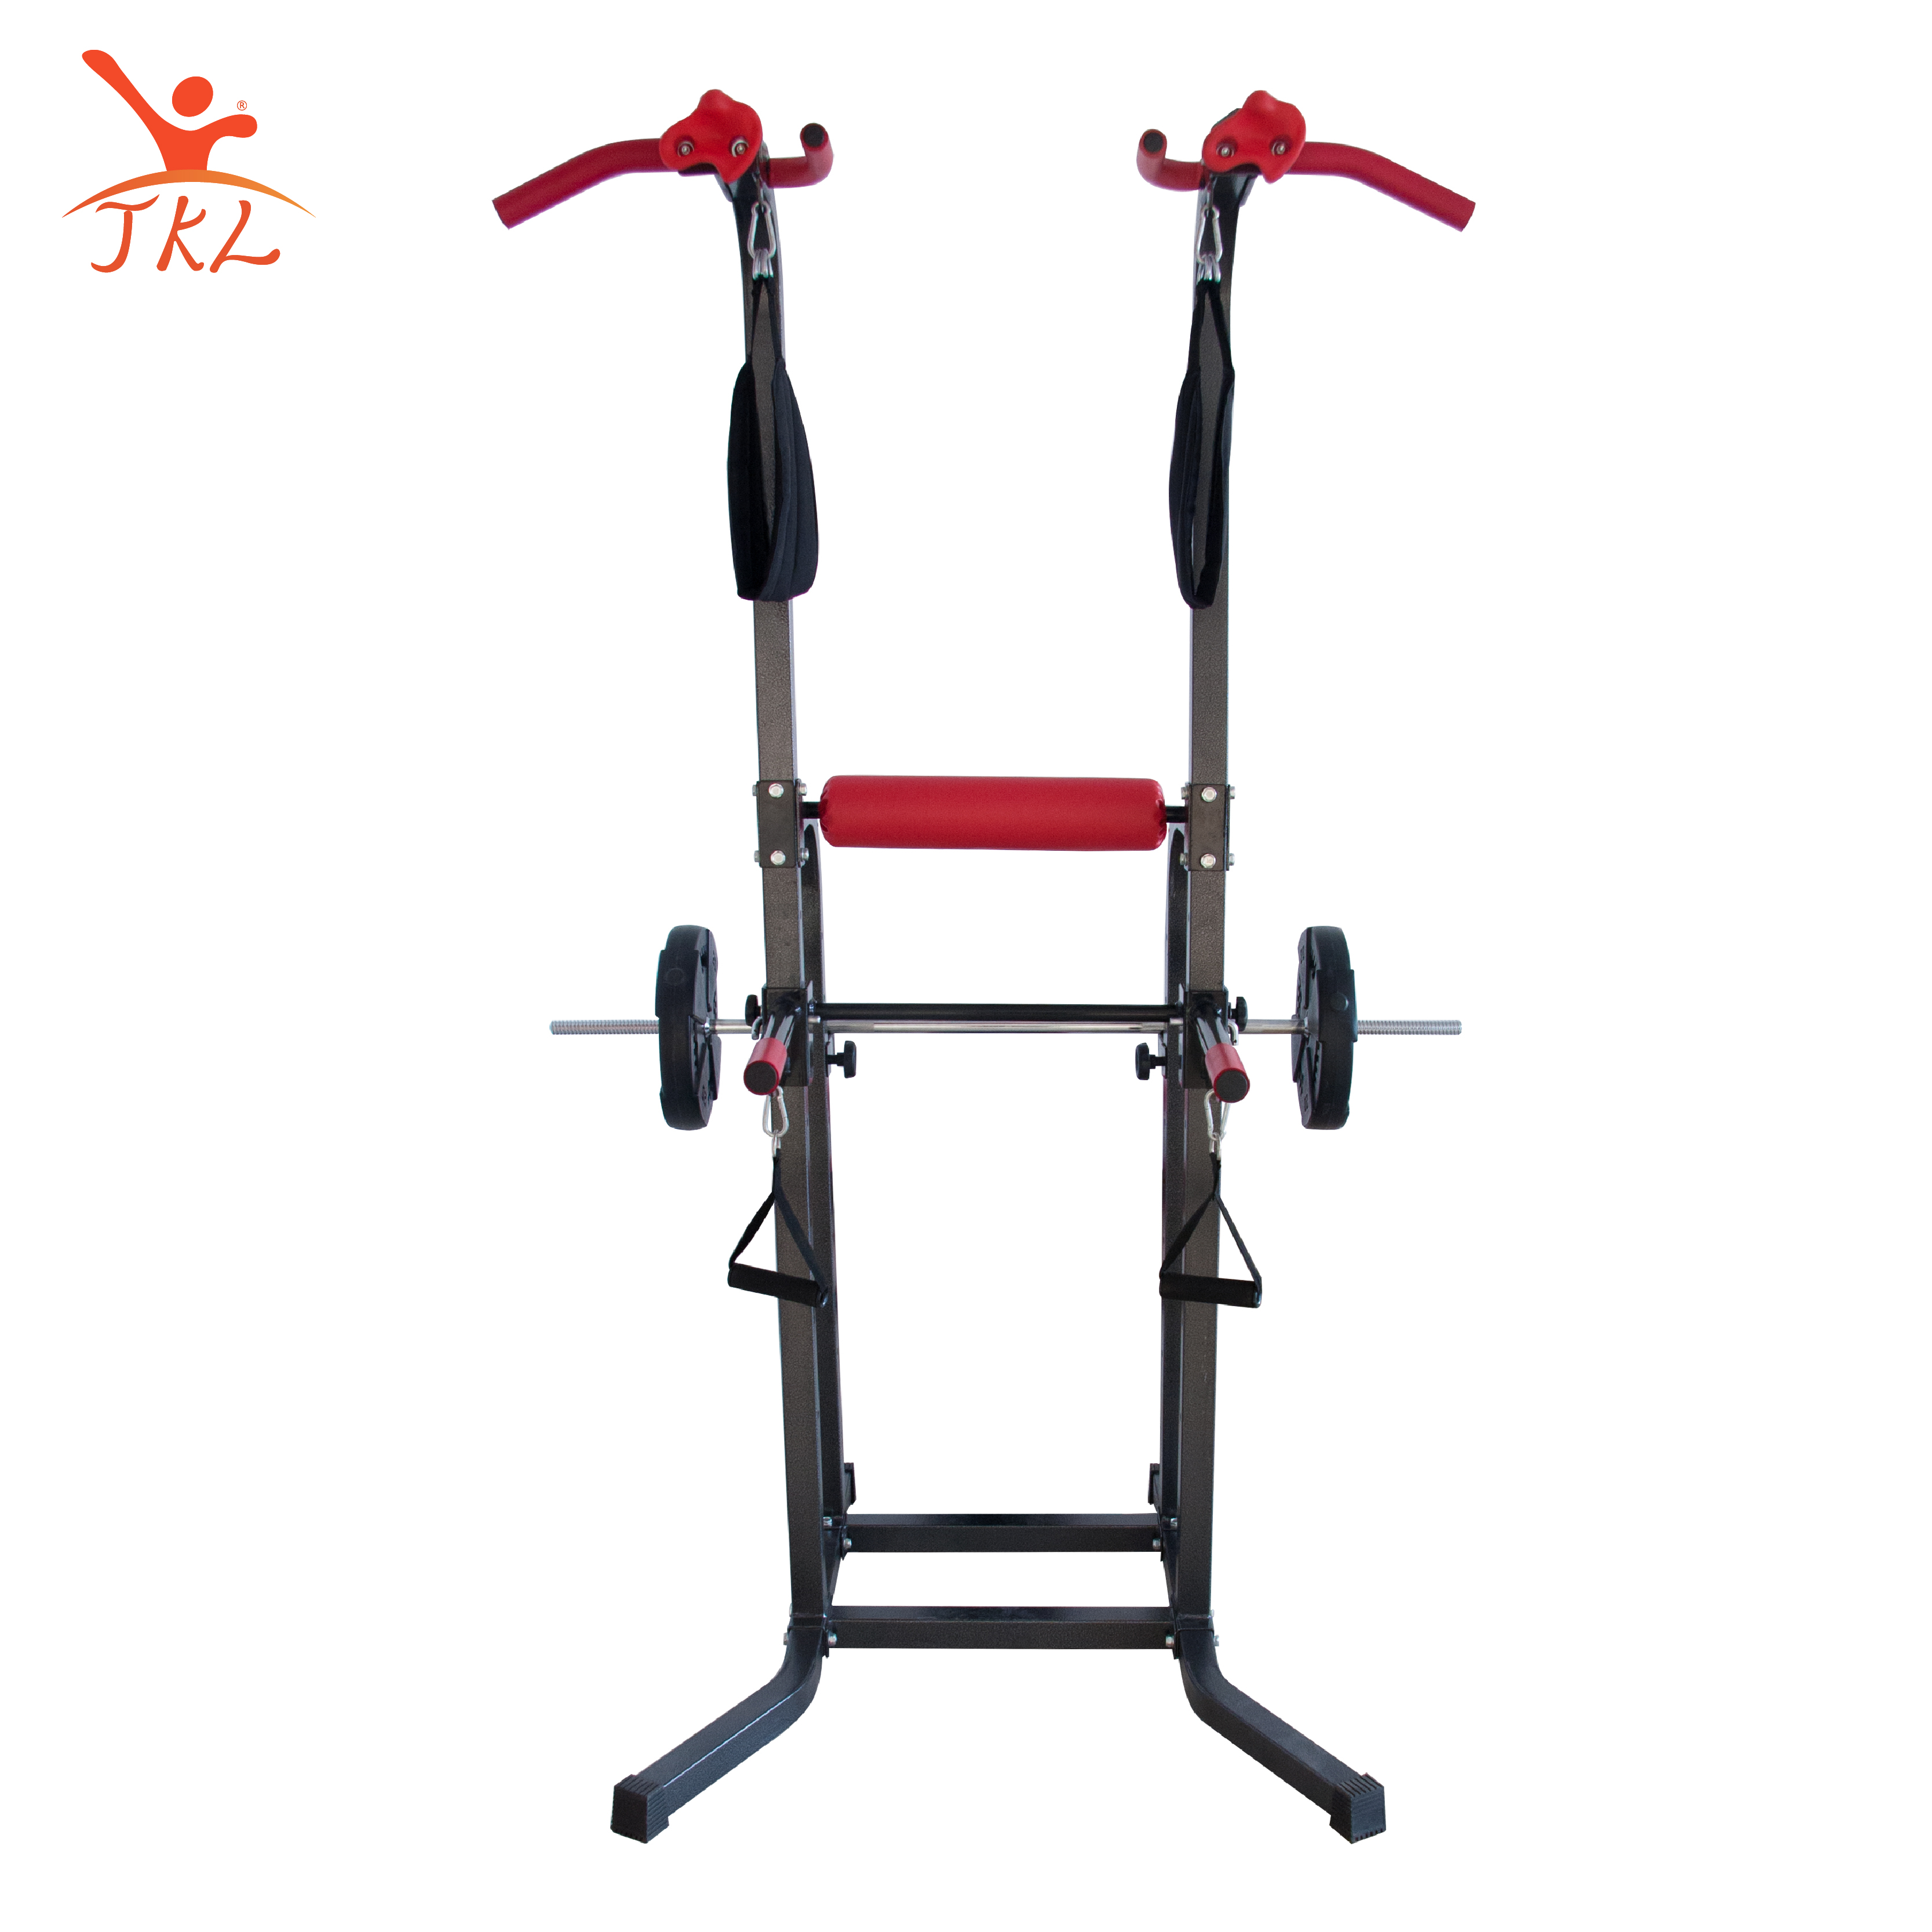 Enkele parallelle bars sport fitness apparatuur thuis horizontale bar training hoist fitness apparatuur